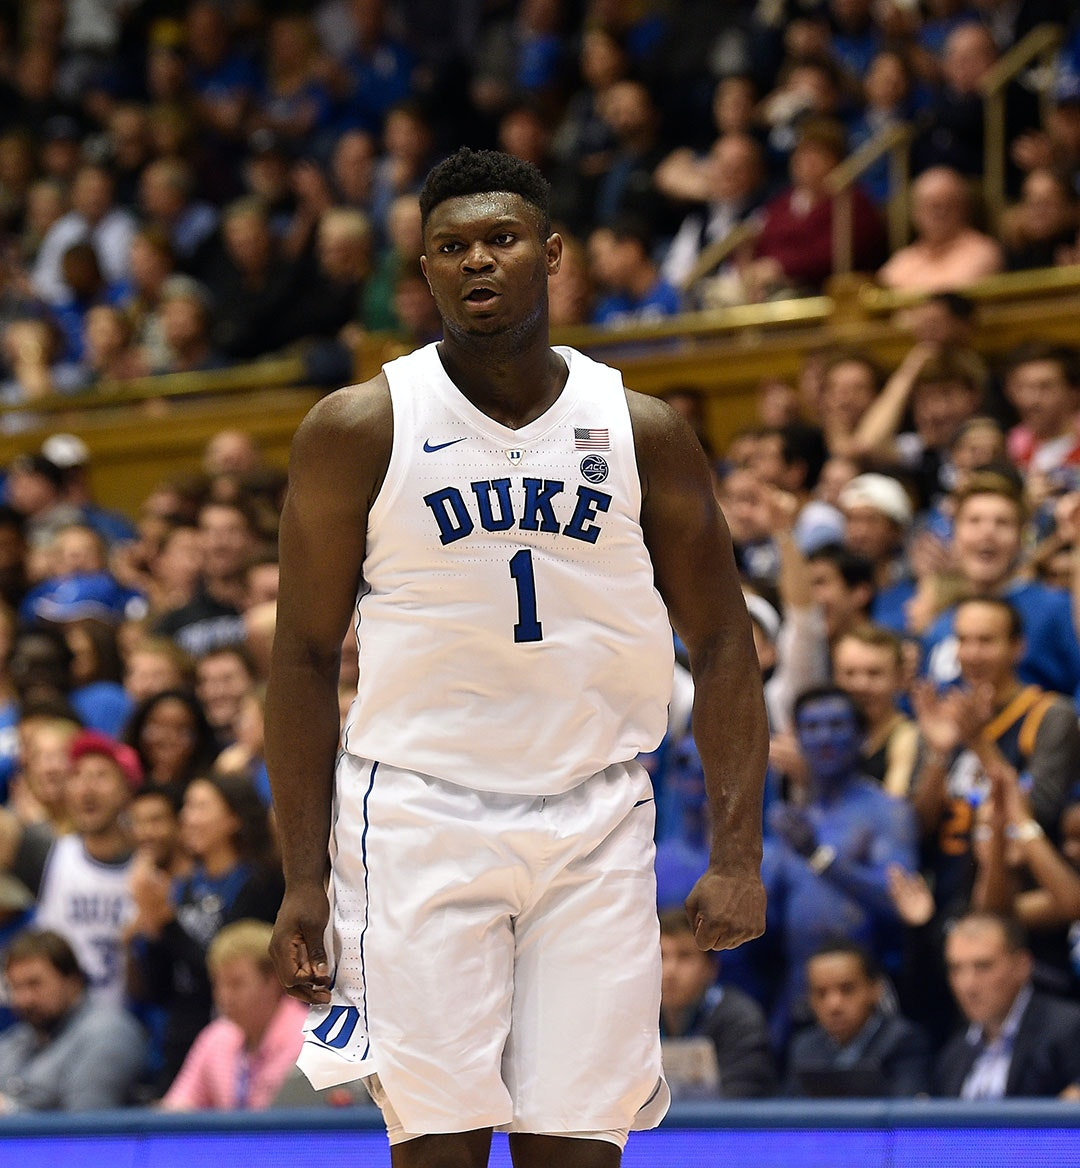 zion williamson Mobile Hero Imaeg 1080x1168